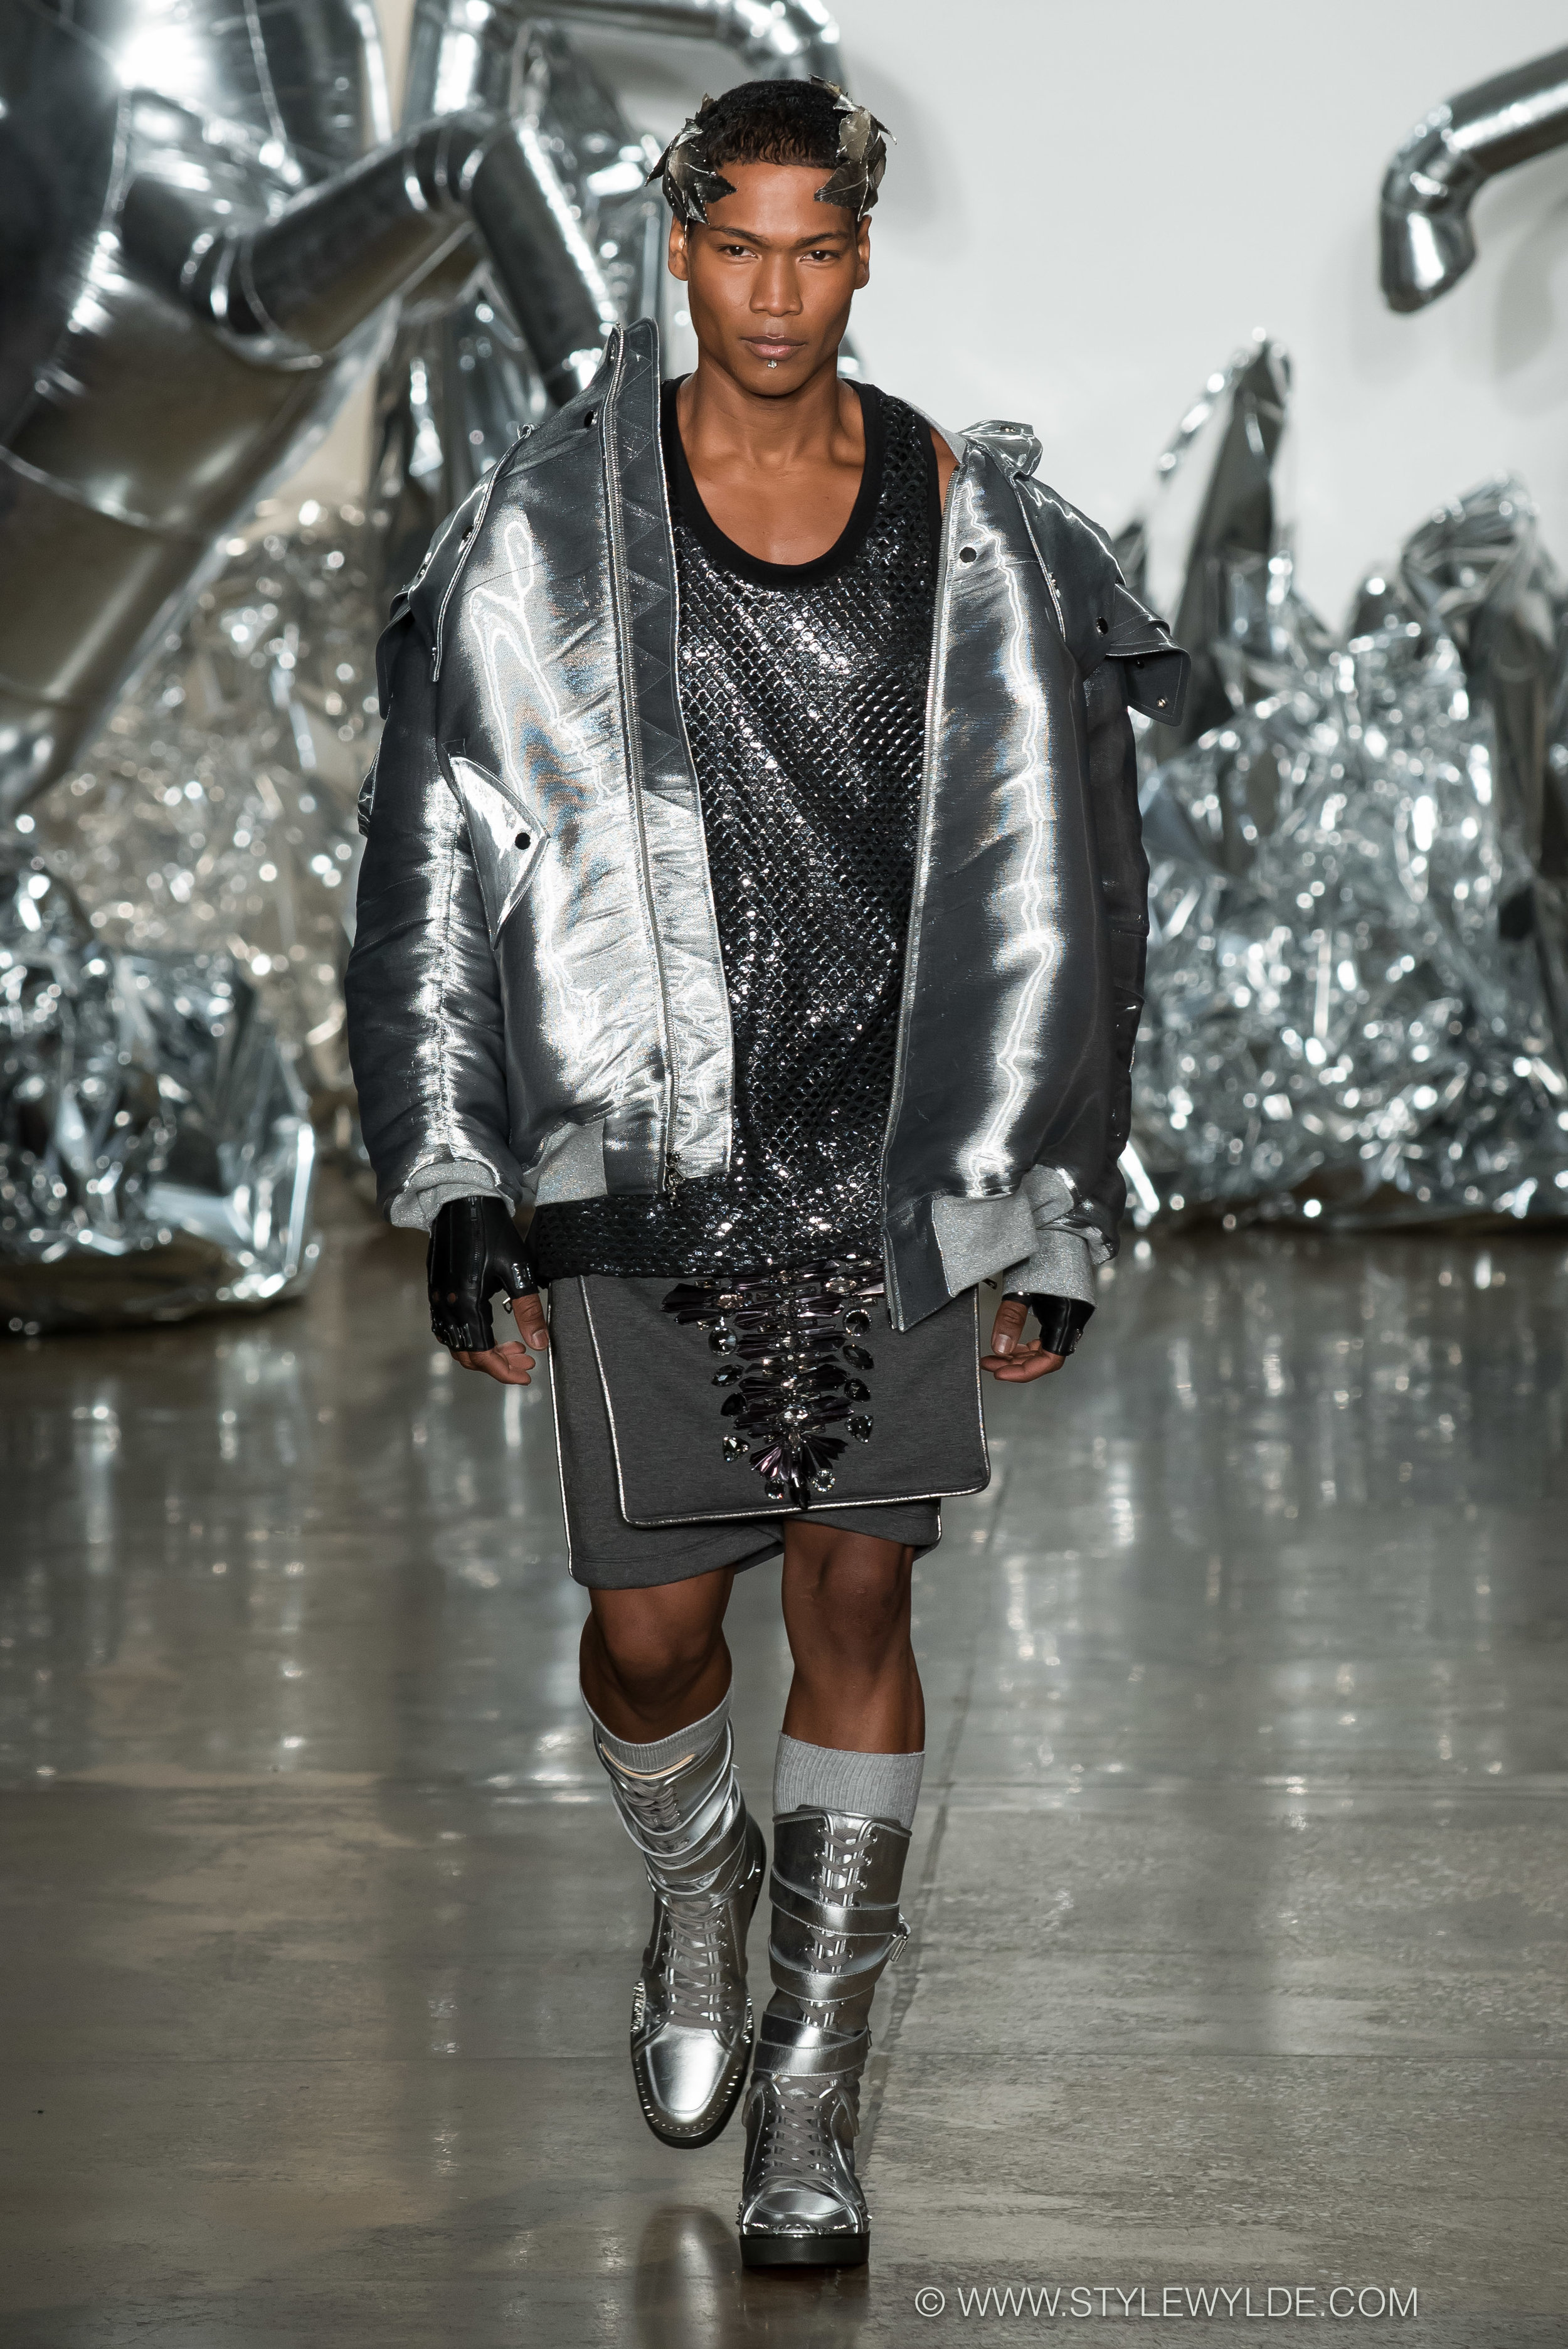 stylewylde-The Blonds SS17-FOH- Edits-48.jpg